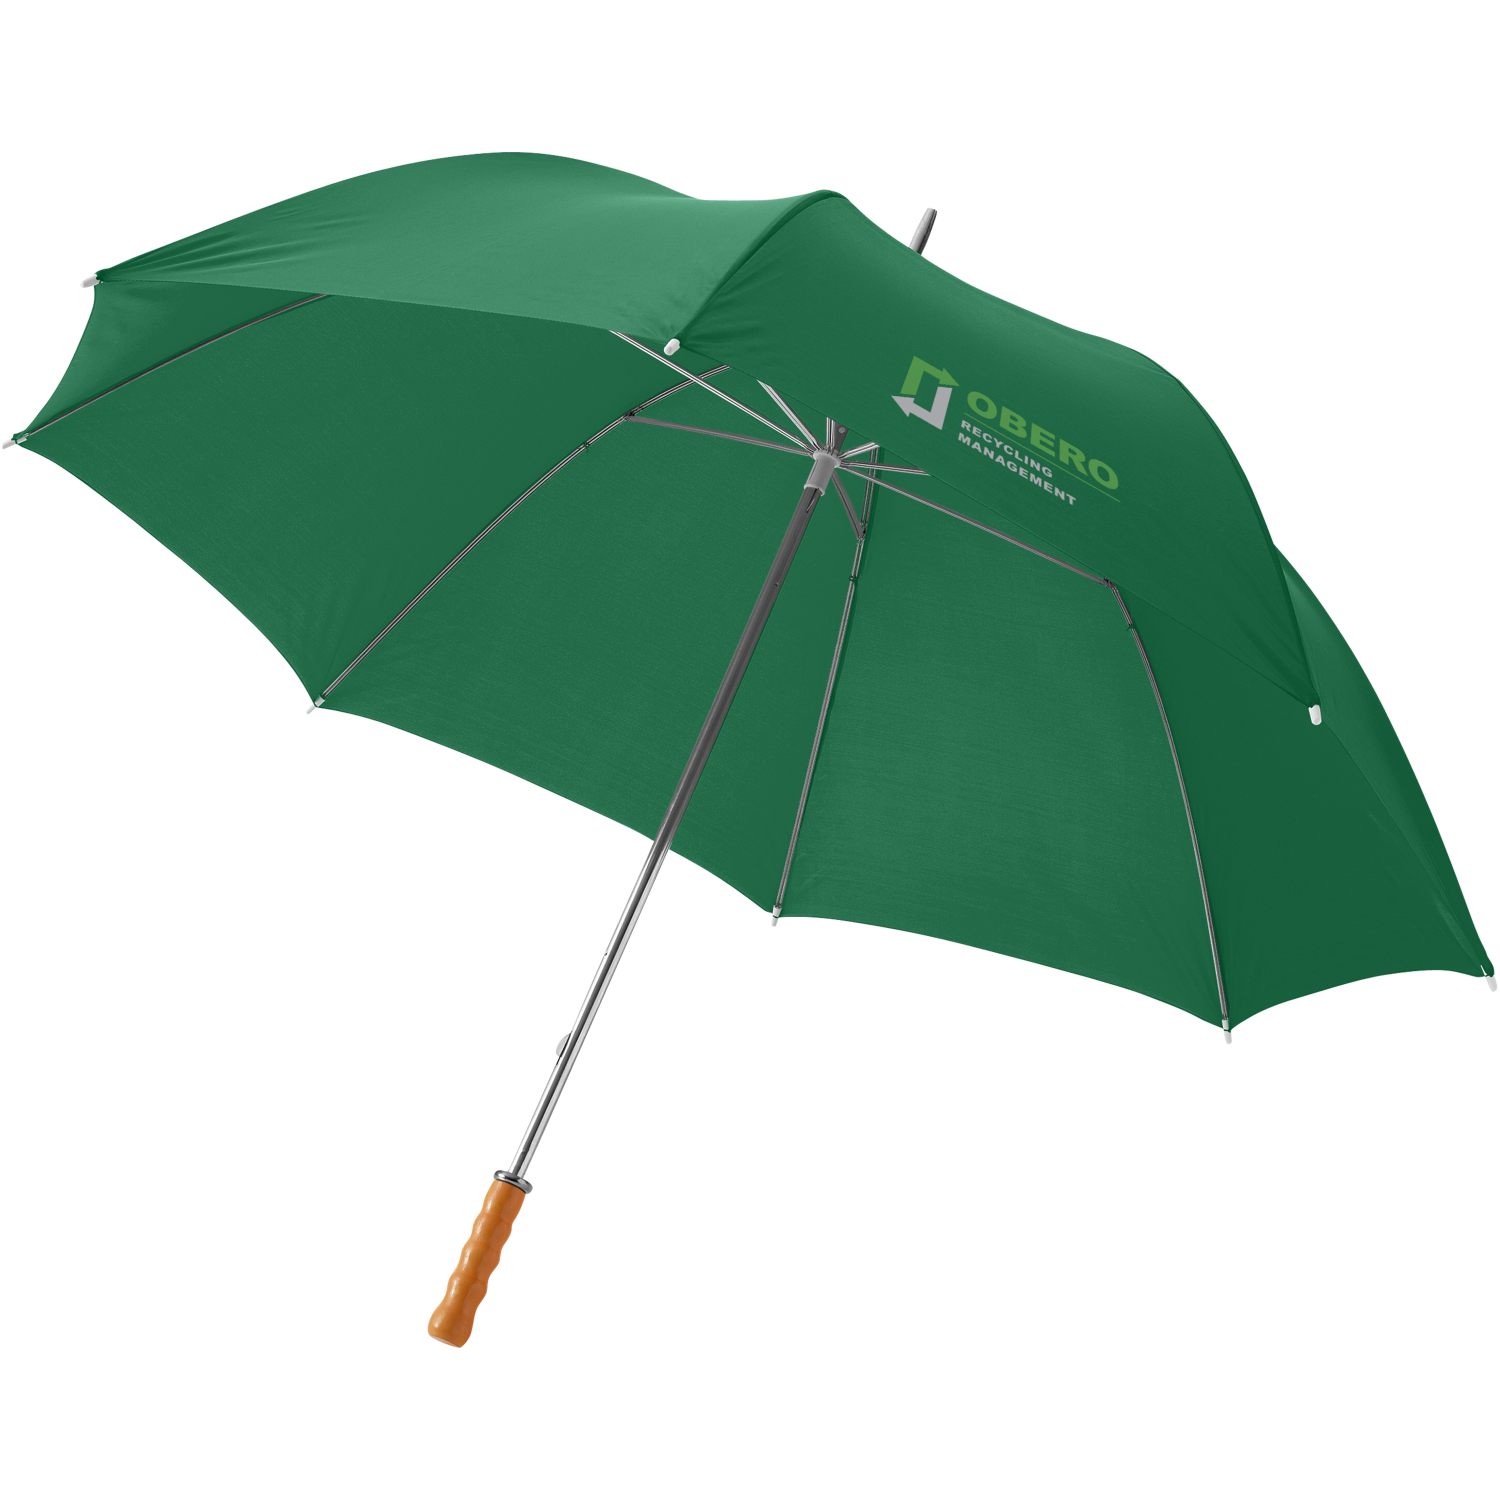 Karl 30Inch Golf Umbrella With Wooden Handle